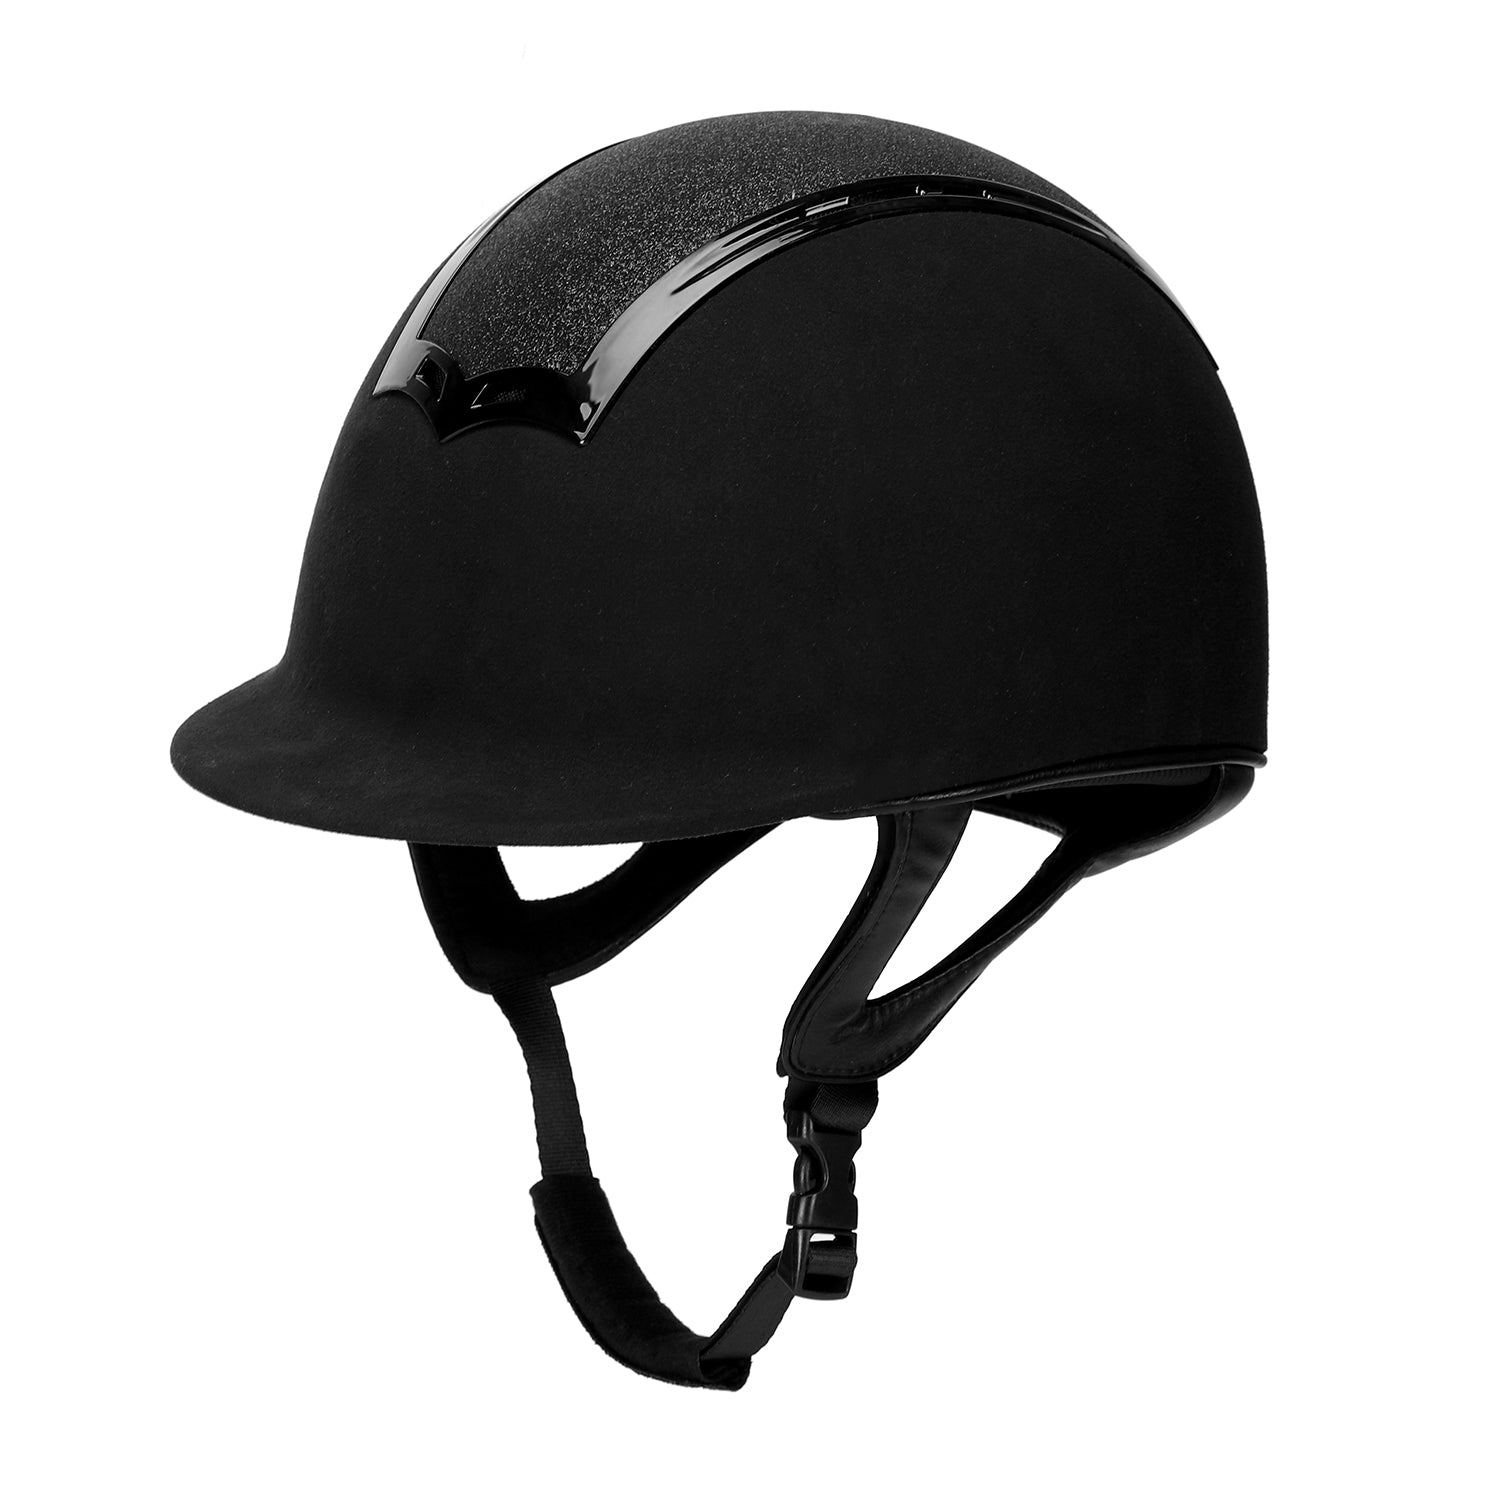 TuffRider Show Time Plus Helmet |Protective Head Gear for Equestrian Riders - SEI Certified, Tough and Durable - Black_3489